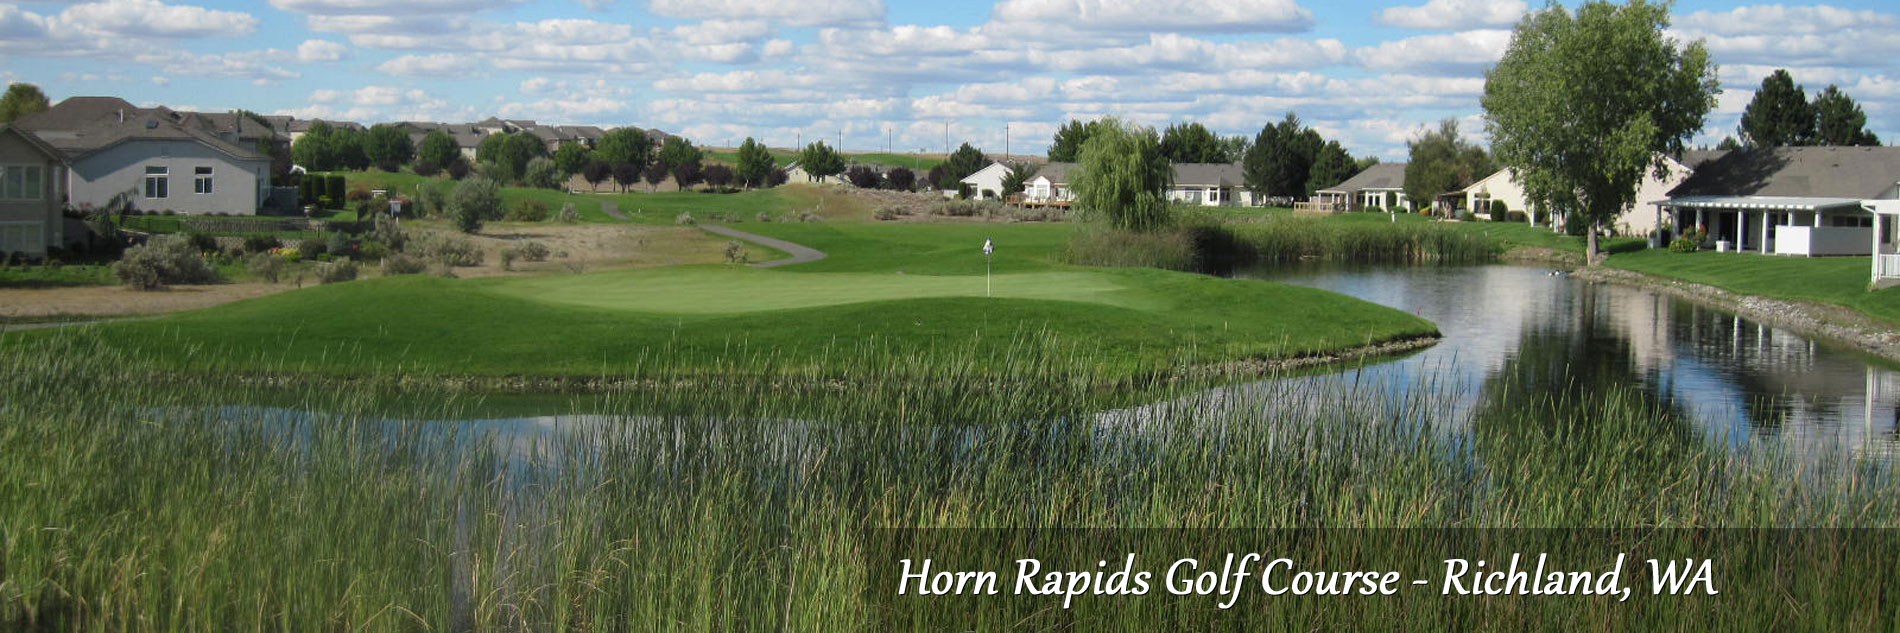 Horn Rapids Golf Course